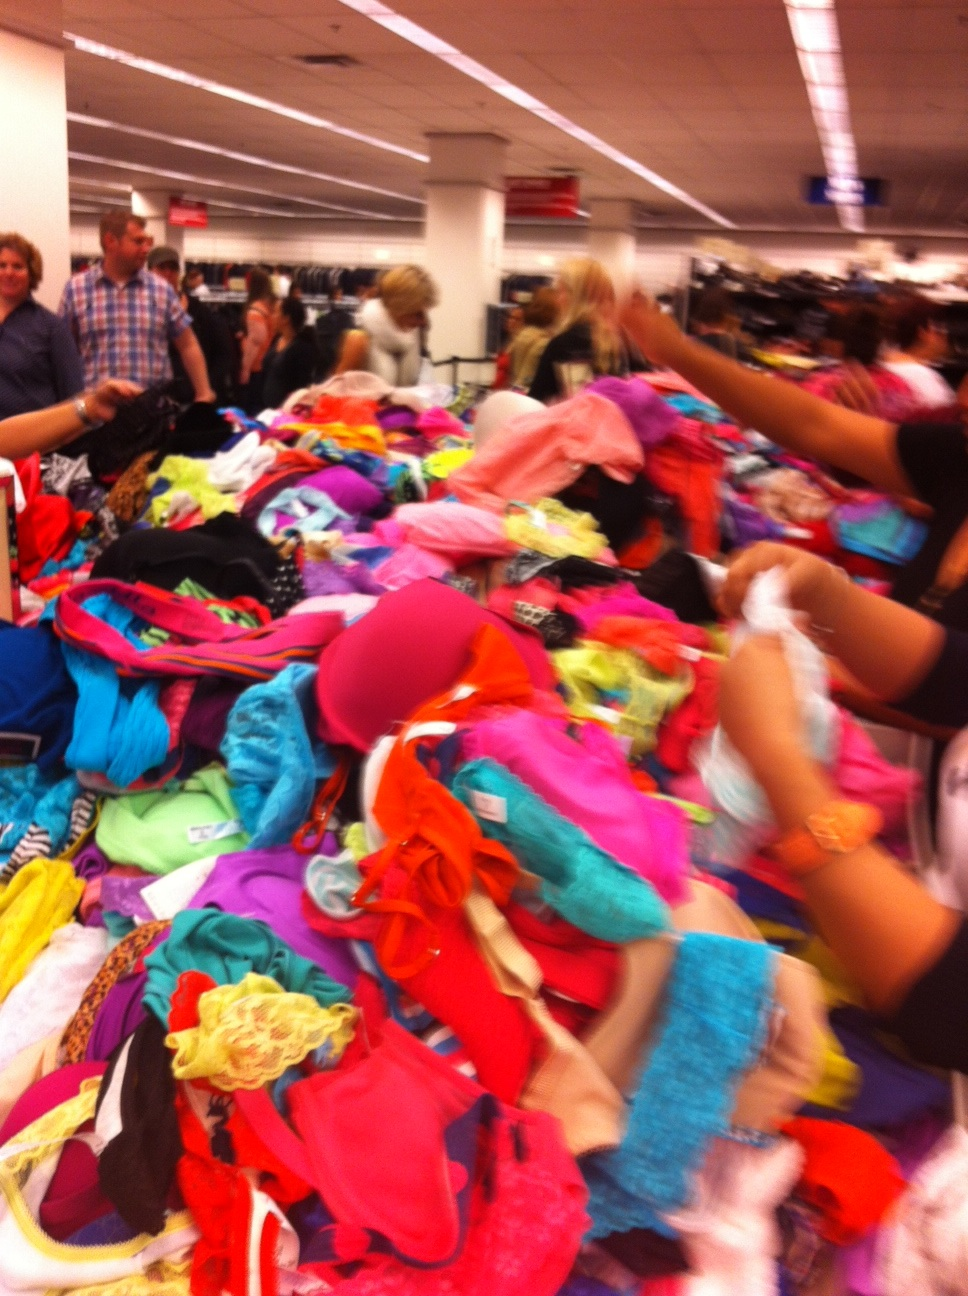 However, once inside you are immediately confronted with a frenzy of shoppers like those sifting through a huge bin of colourful women's underwear.